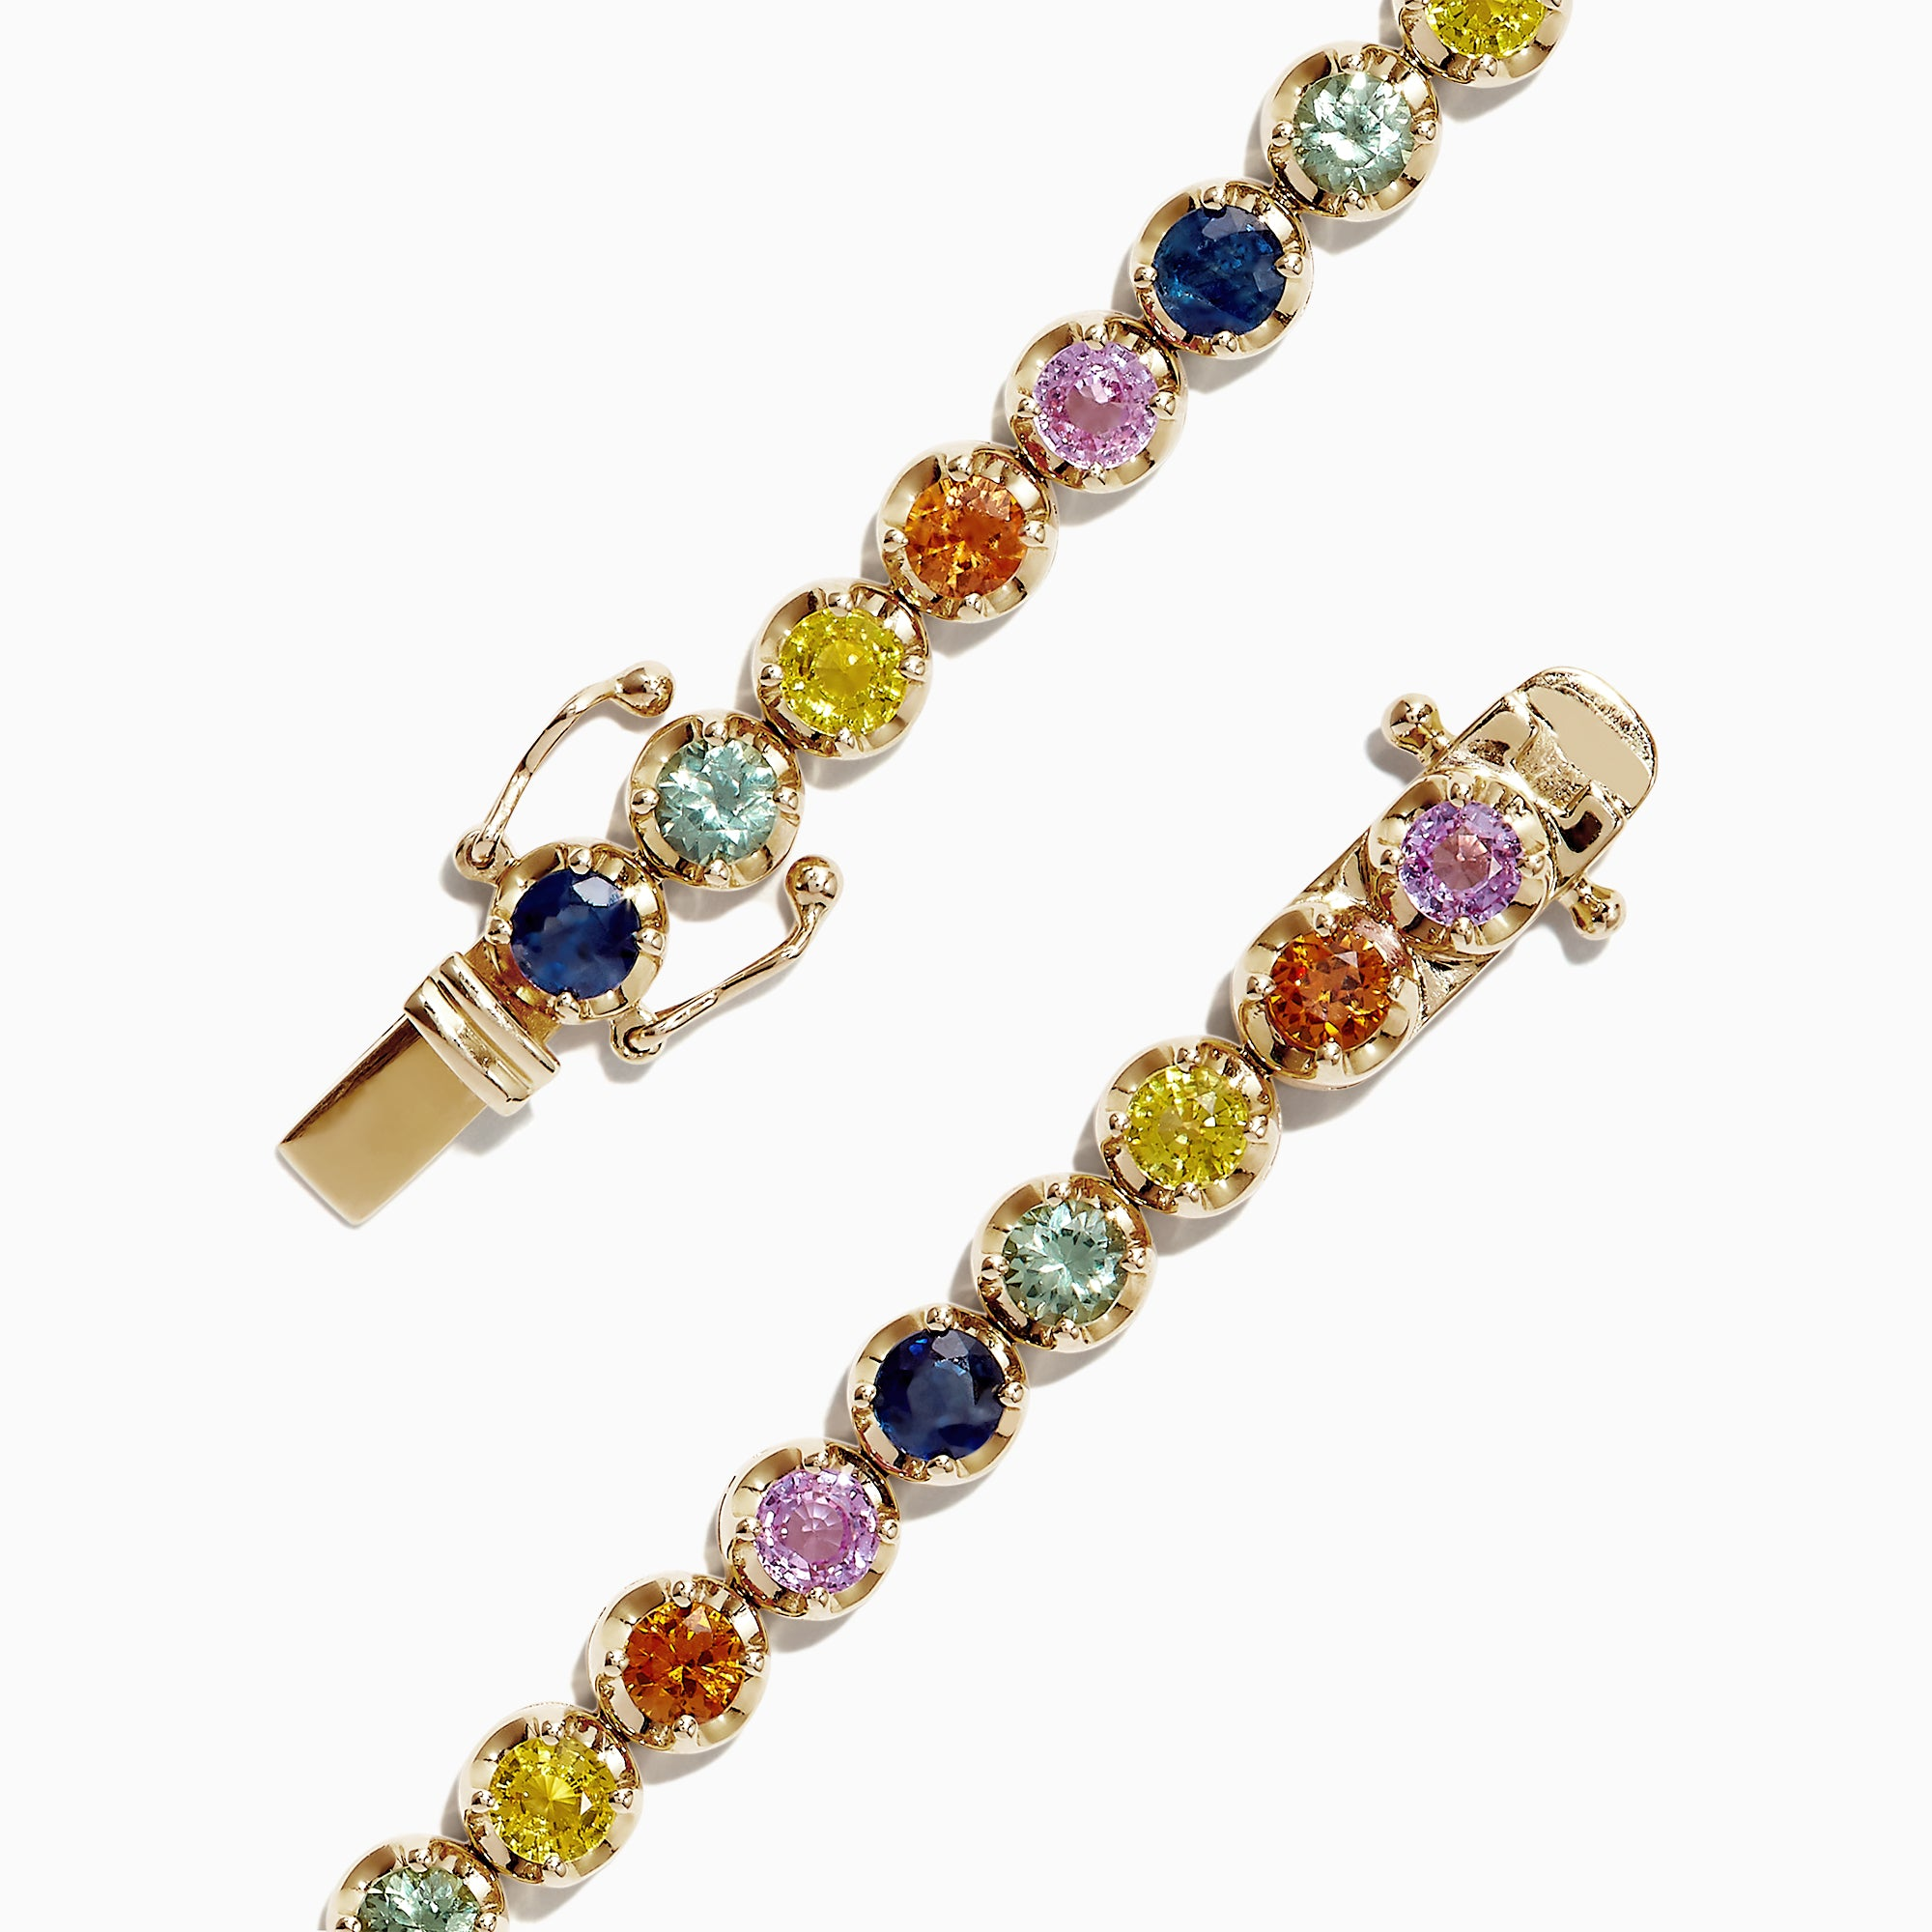 Effy Watercolors 14K Yellow Gold Multi-Sapphire Tennis Bracelet, 8.05 TCW